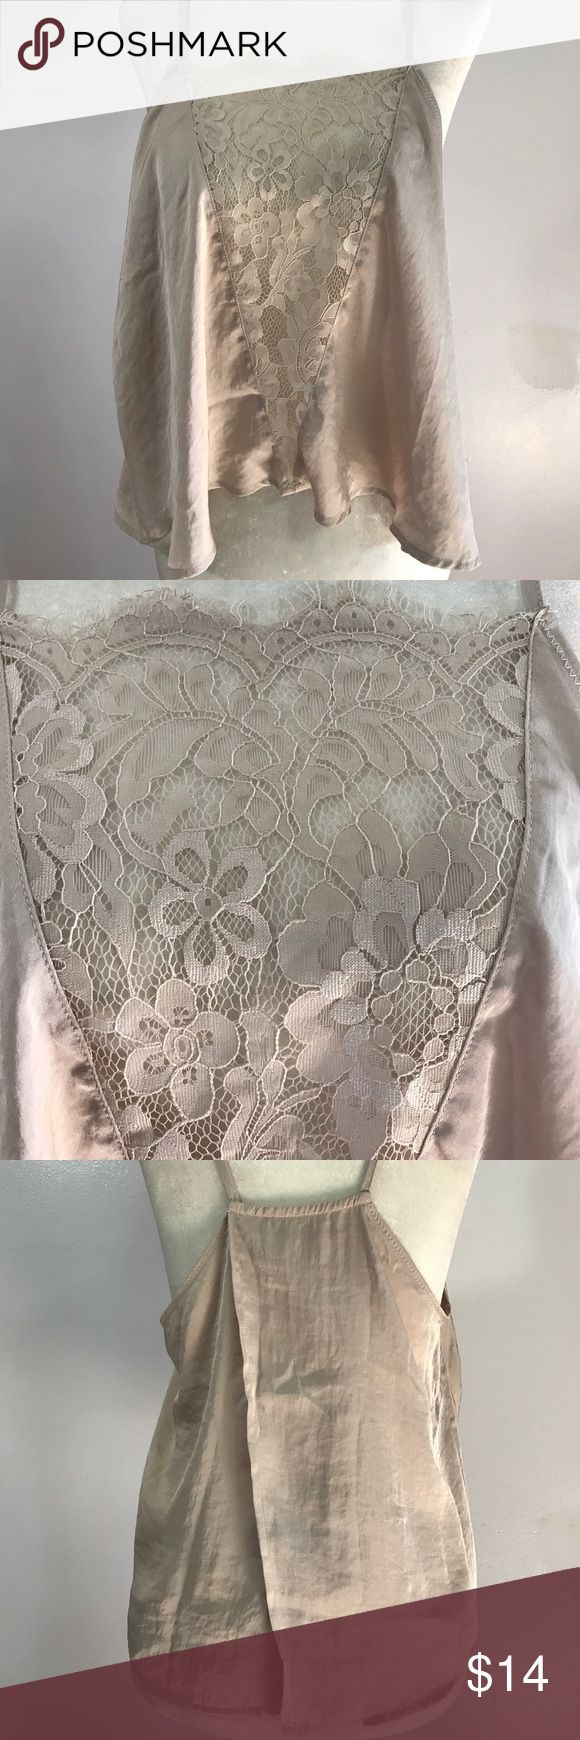 Free People Lace Cami- Med NWOT Absolutely gorgeous nude Cami!! Brand new💕 Free People Intimates & Sleepwear